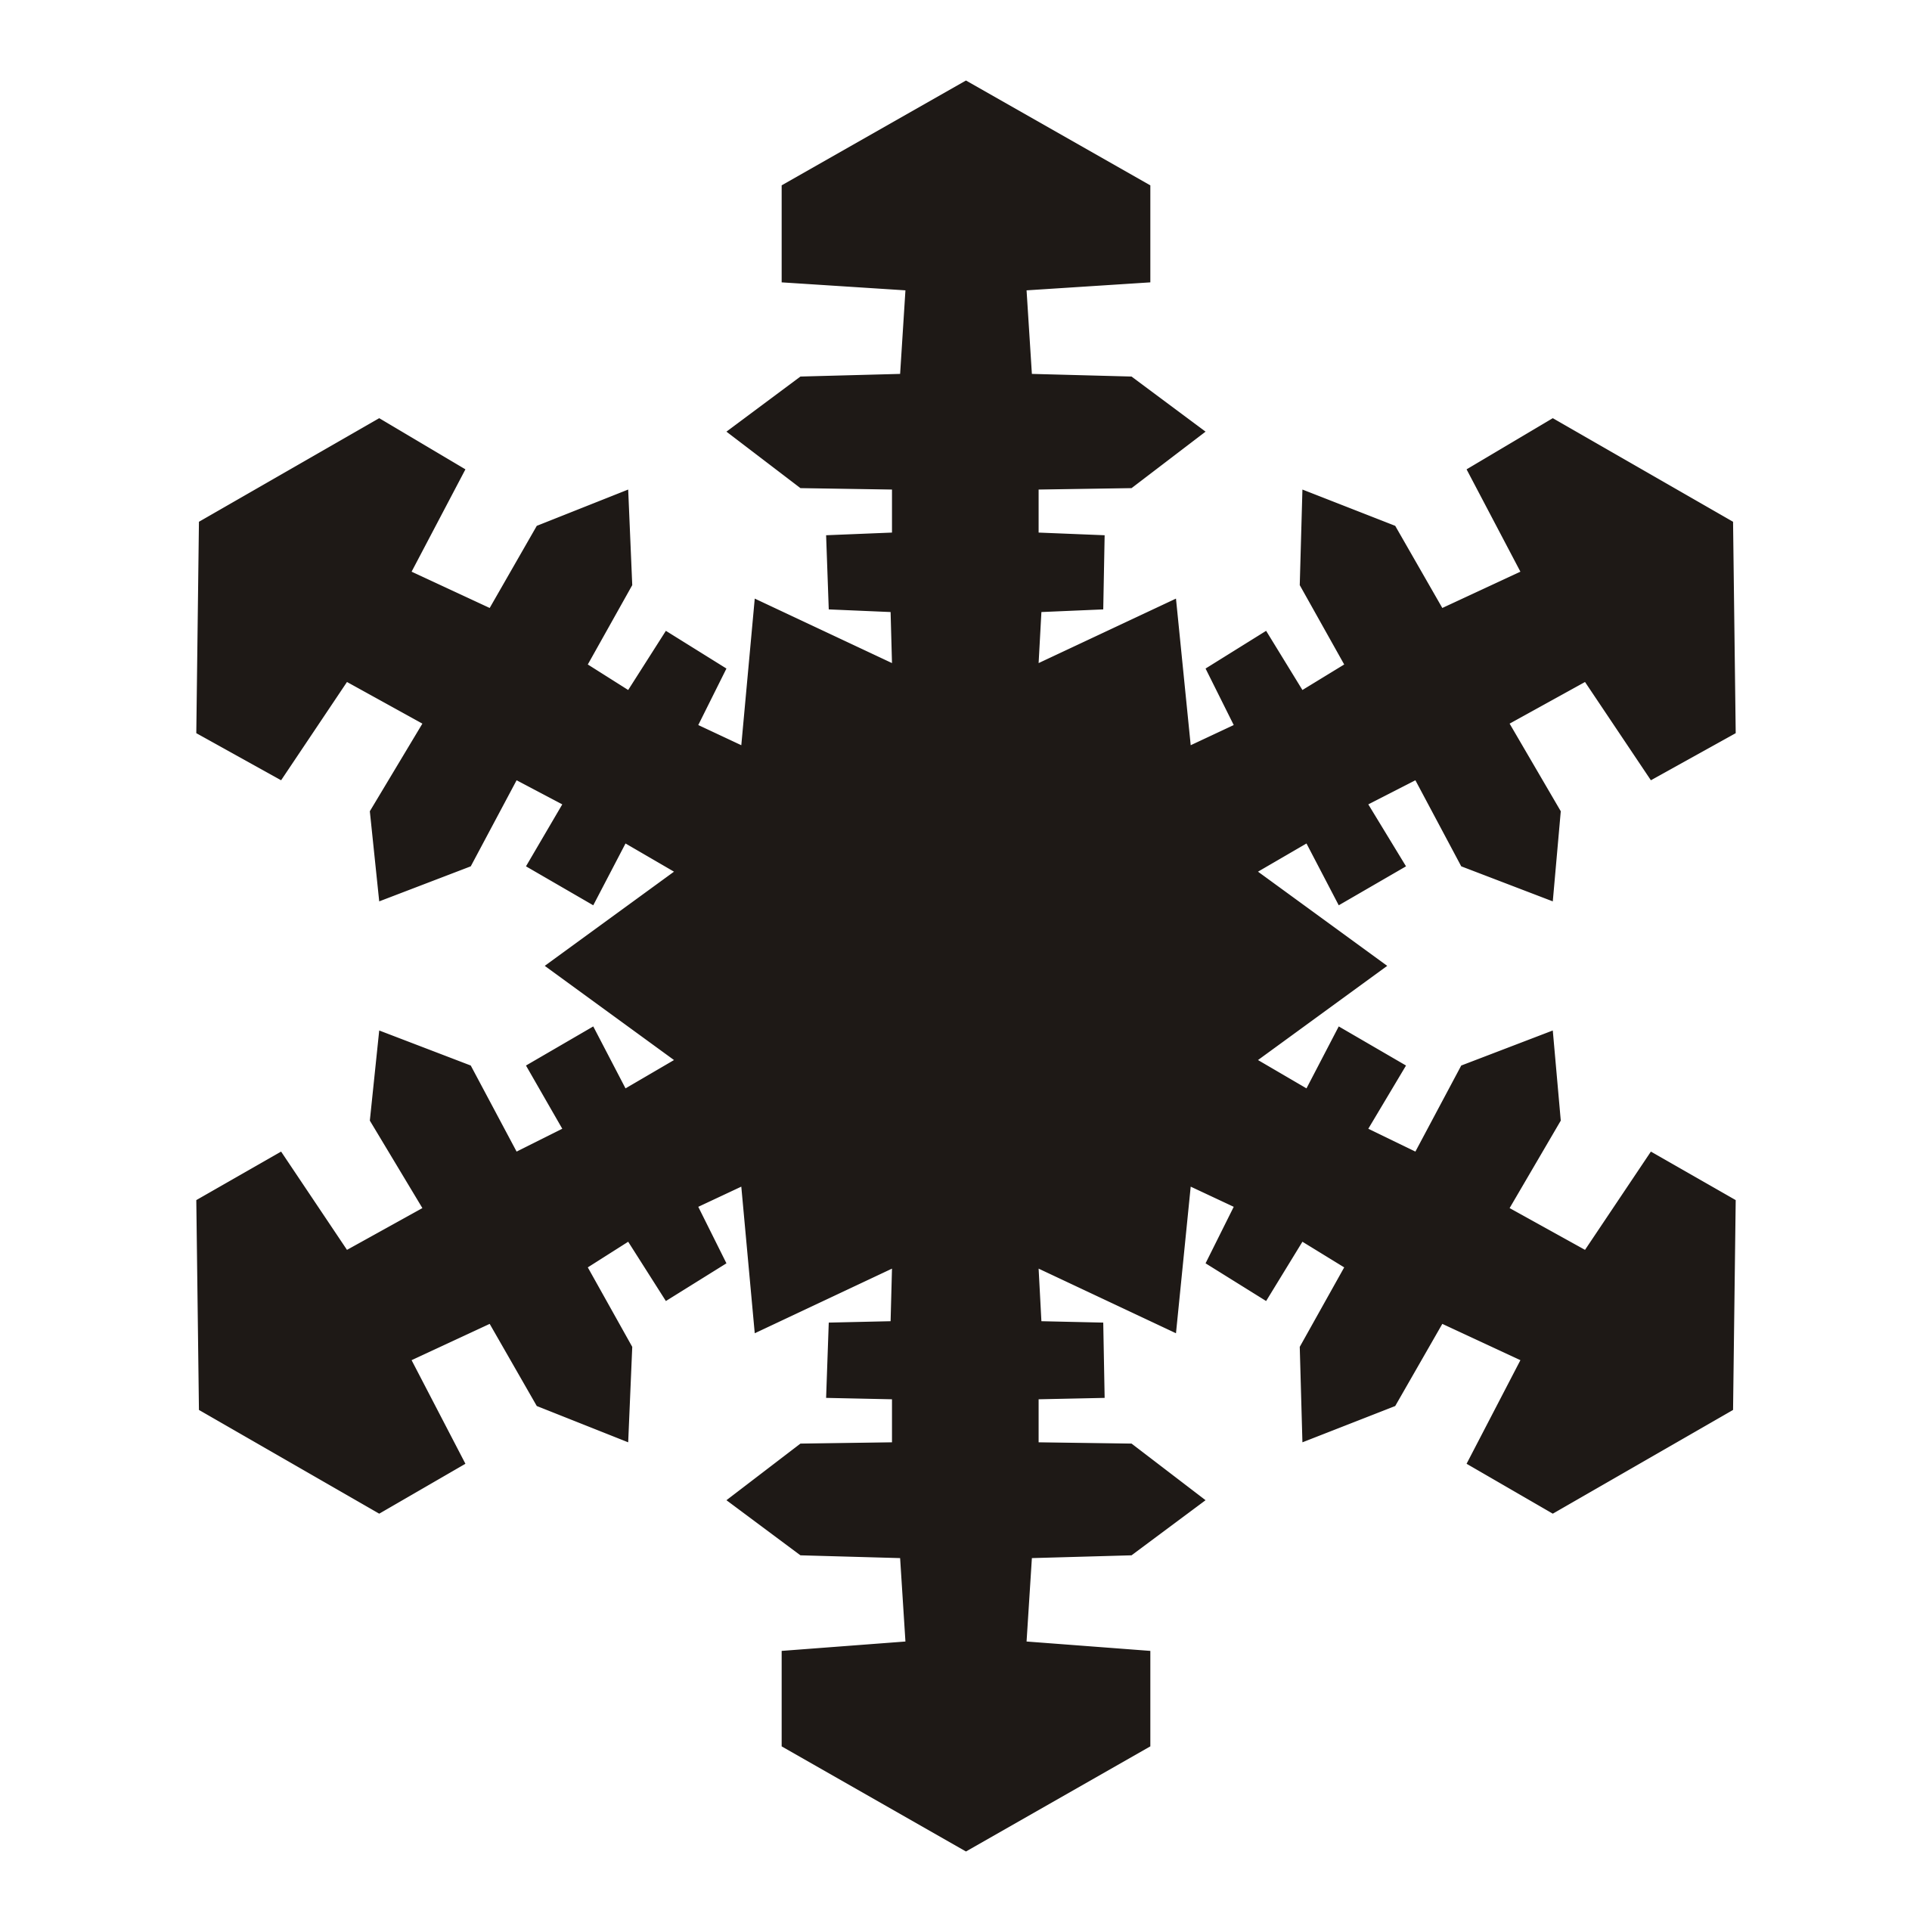 Fancy black snowflake clipart clipart free library 19 Snowflakes clipart HUGE FREEBIE! Download for PowerPoint ... clipart free library